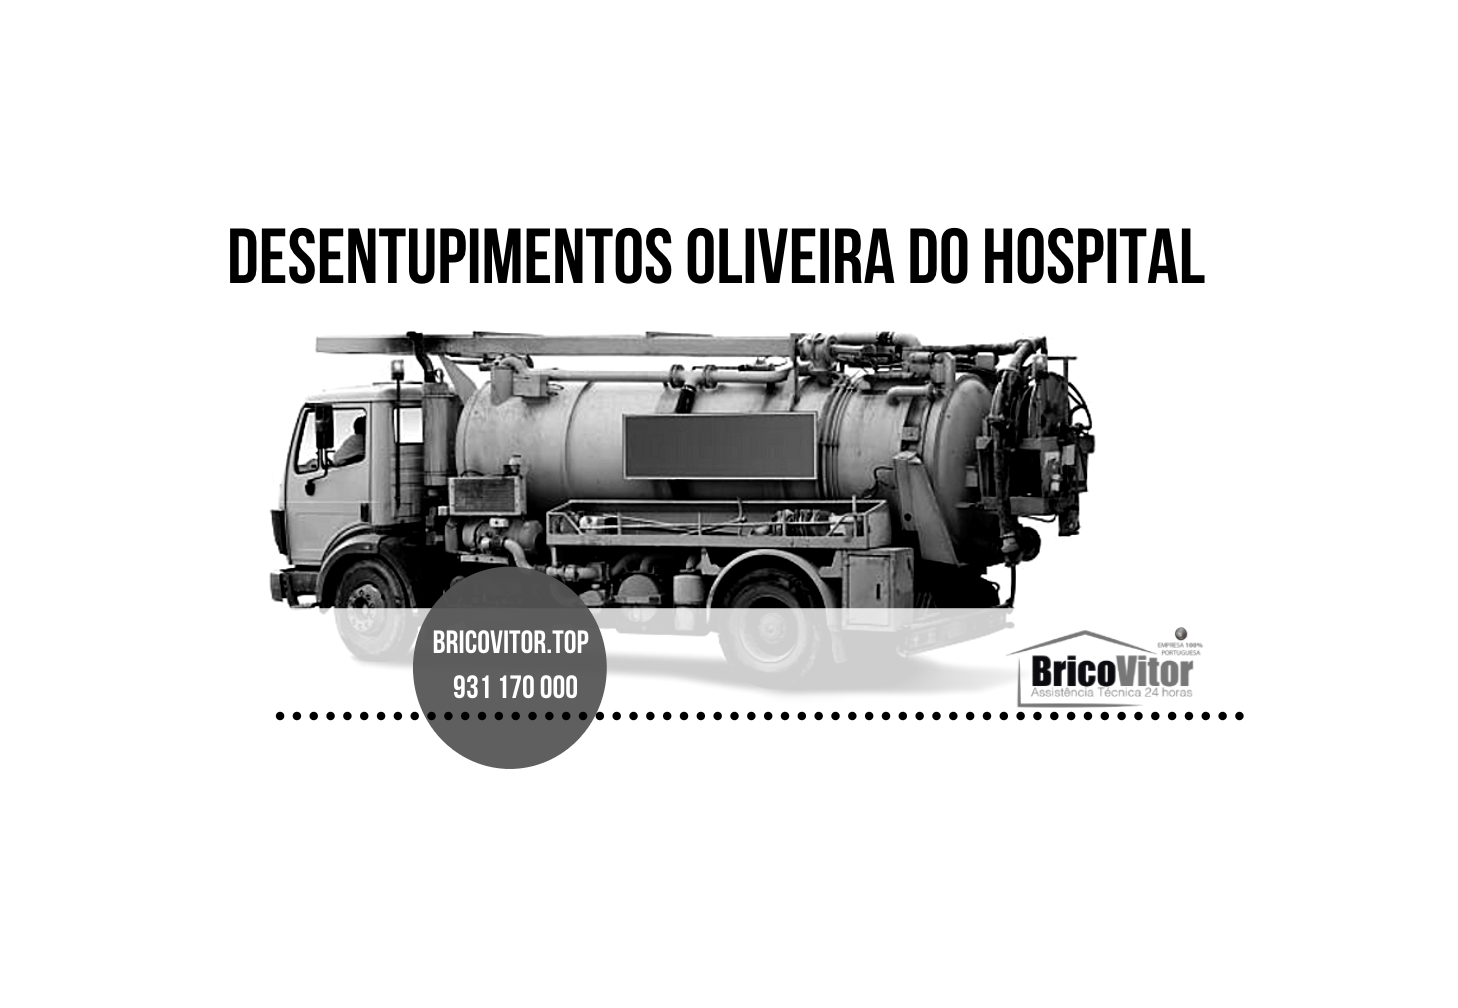 Desentupimentos Oliveira do Hospital